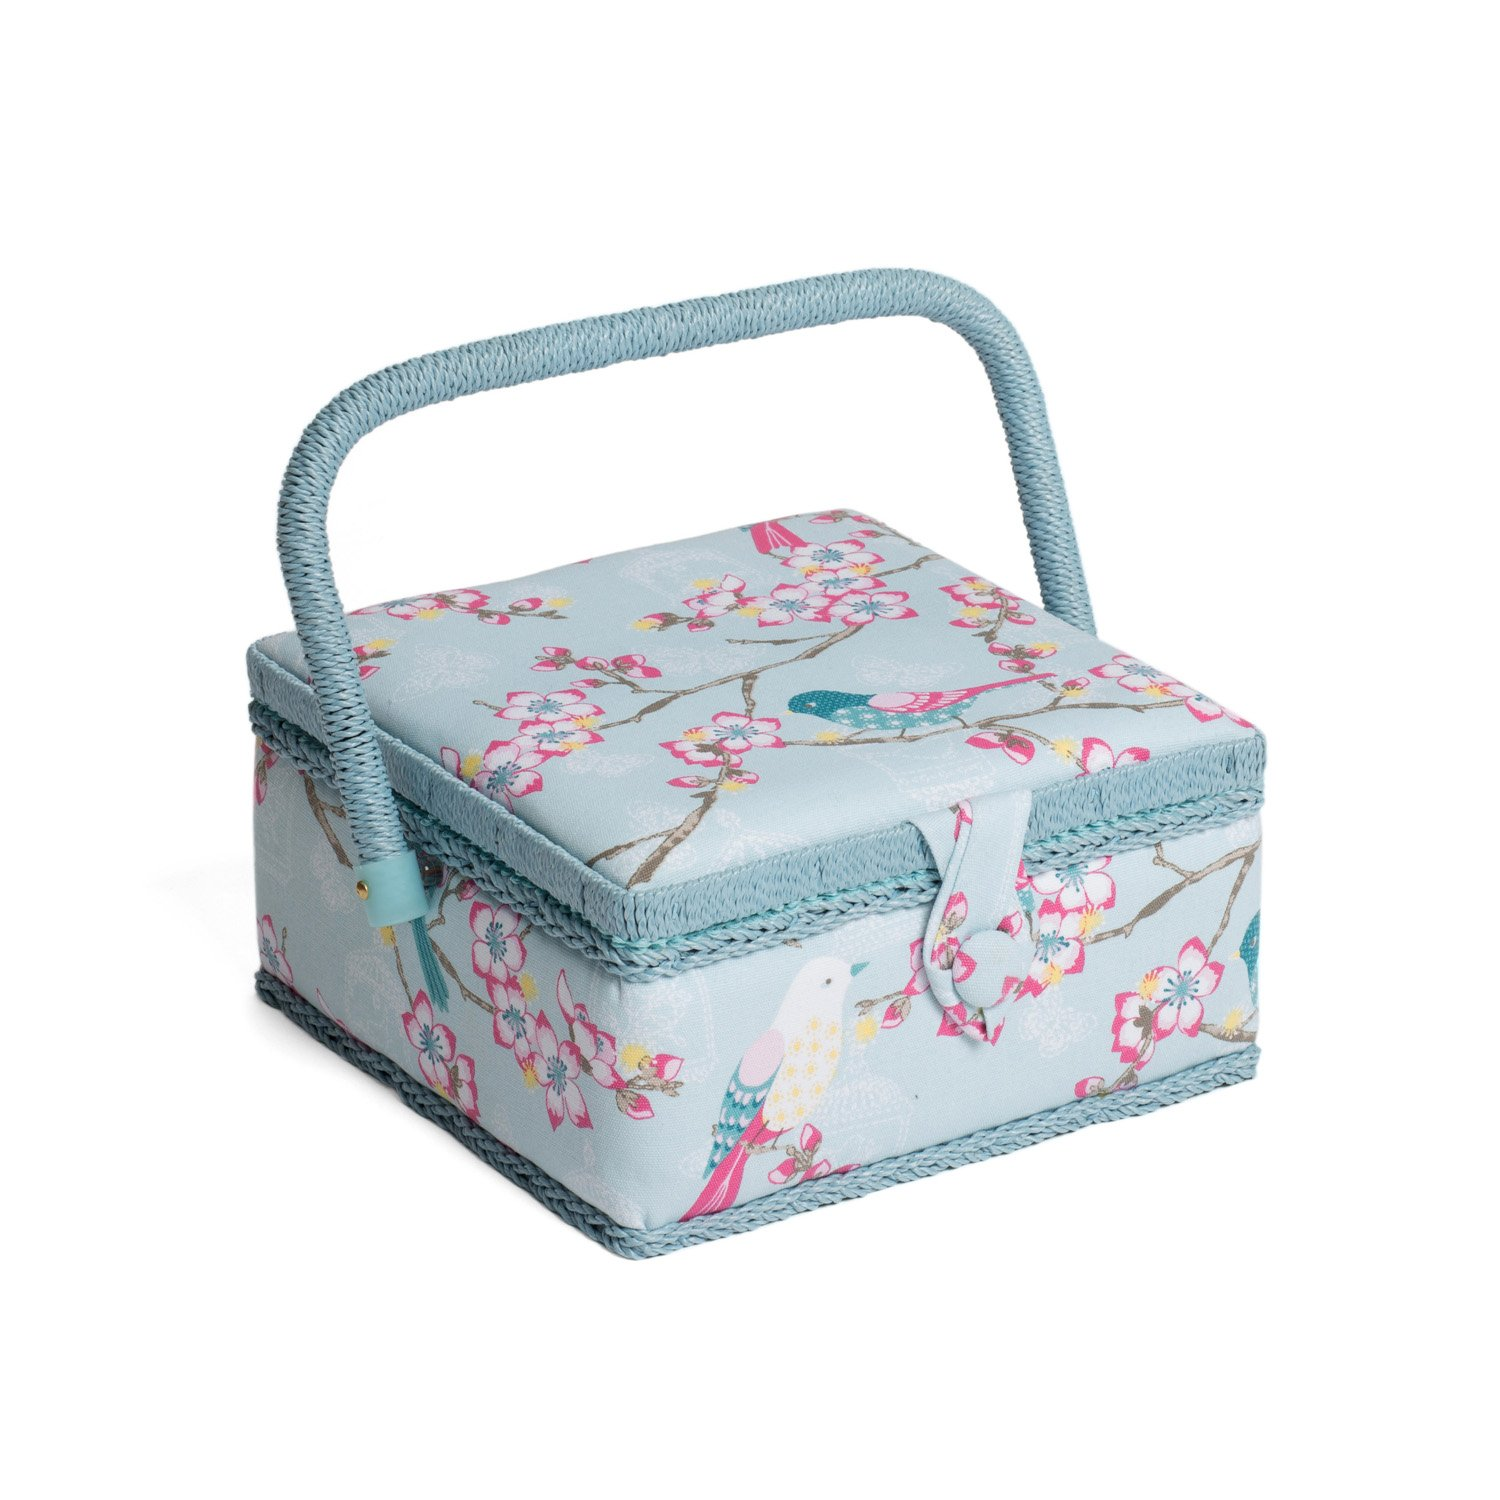 Hobby Gift MRS/198 | Tweet Print Small Sewing Box | 20x20x11cm Groves